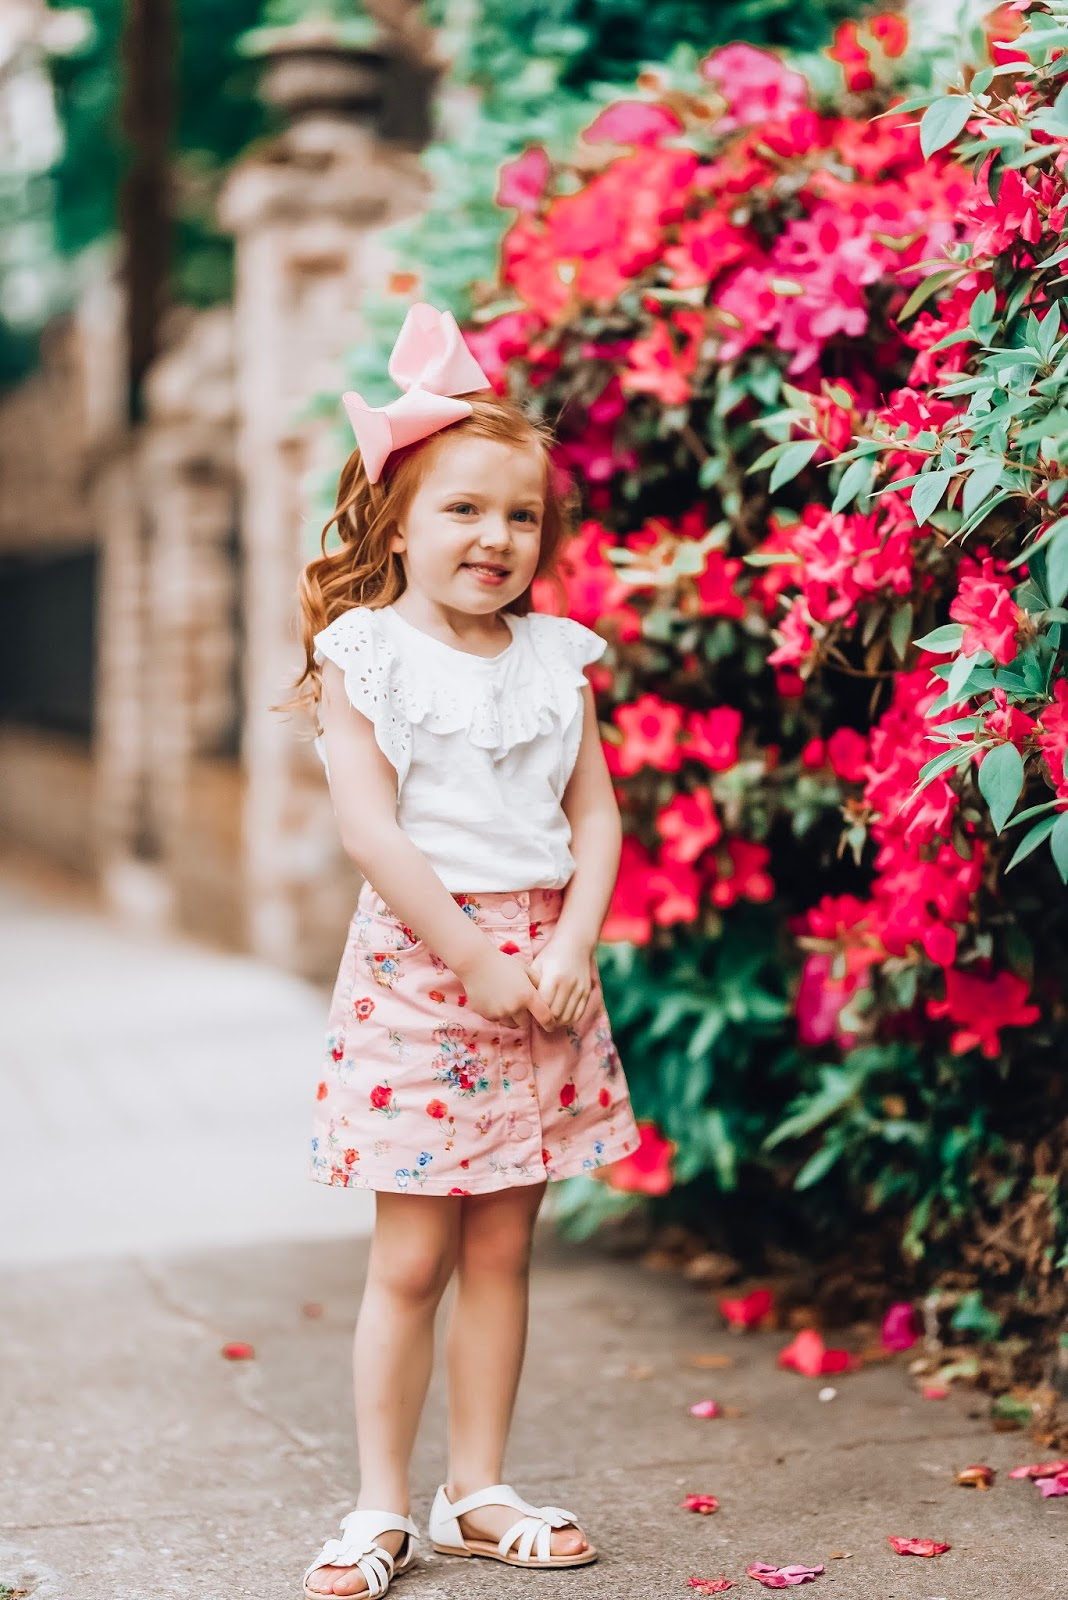 Spring look for girls: Eyelet Flutter Sleeve Top + Floral Skirt and Butterfly Sandals  in Charleston - Something Delightful Blog  #springstyle #summerstyle